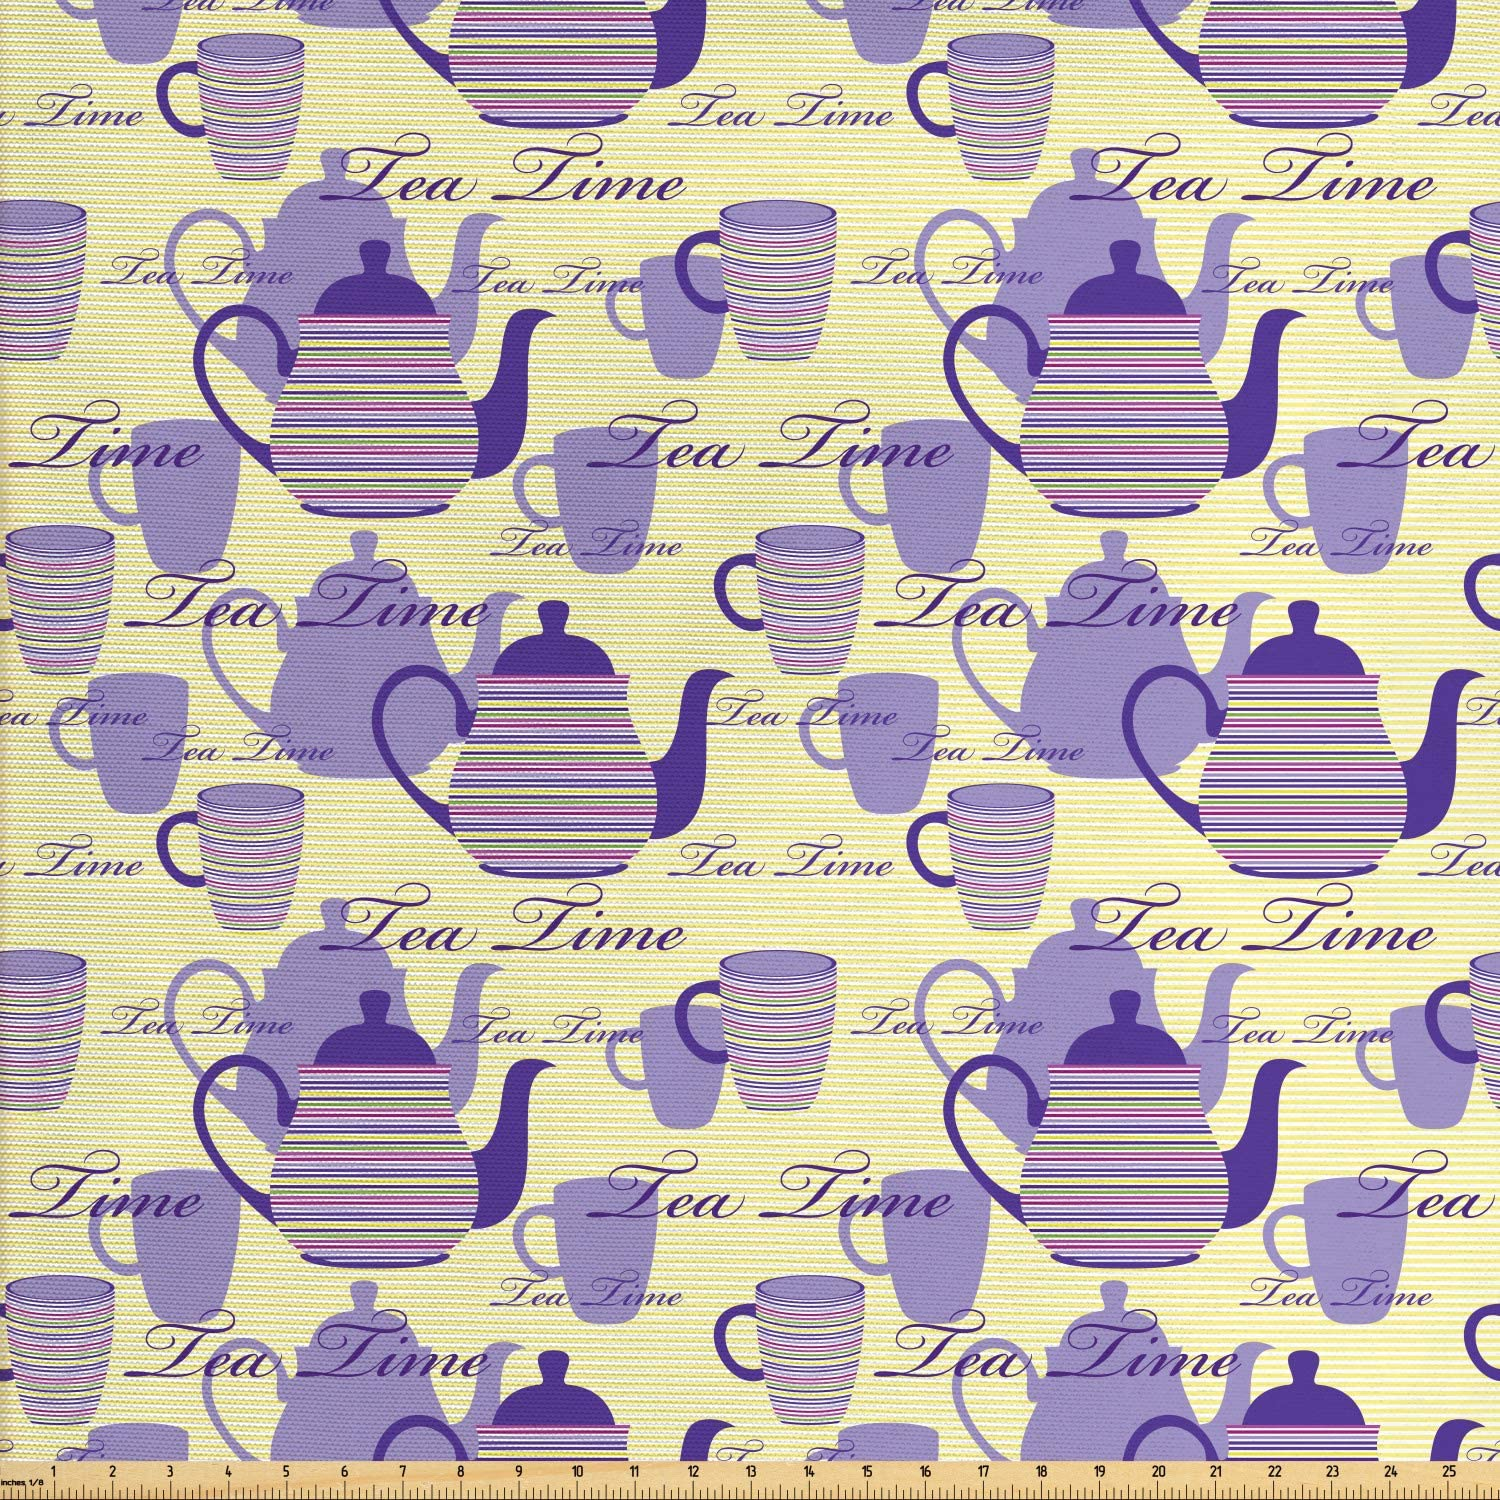 Ambesonne Tea Party Fabric by The Yard, Striped Teapots Cups Silhouettes Classical Calligraphy Pattern, Decorative Fabric for Upholstery and Home Accents, 2 Yards, Yellow Lavender